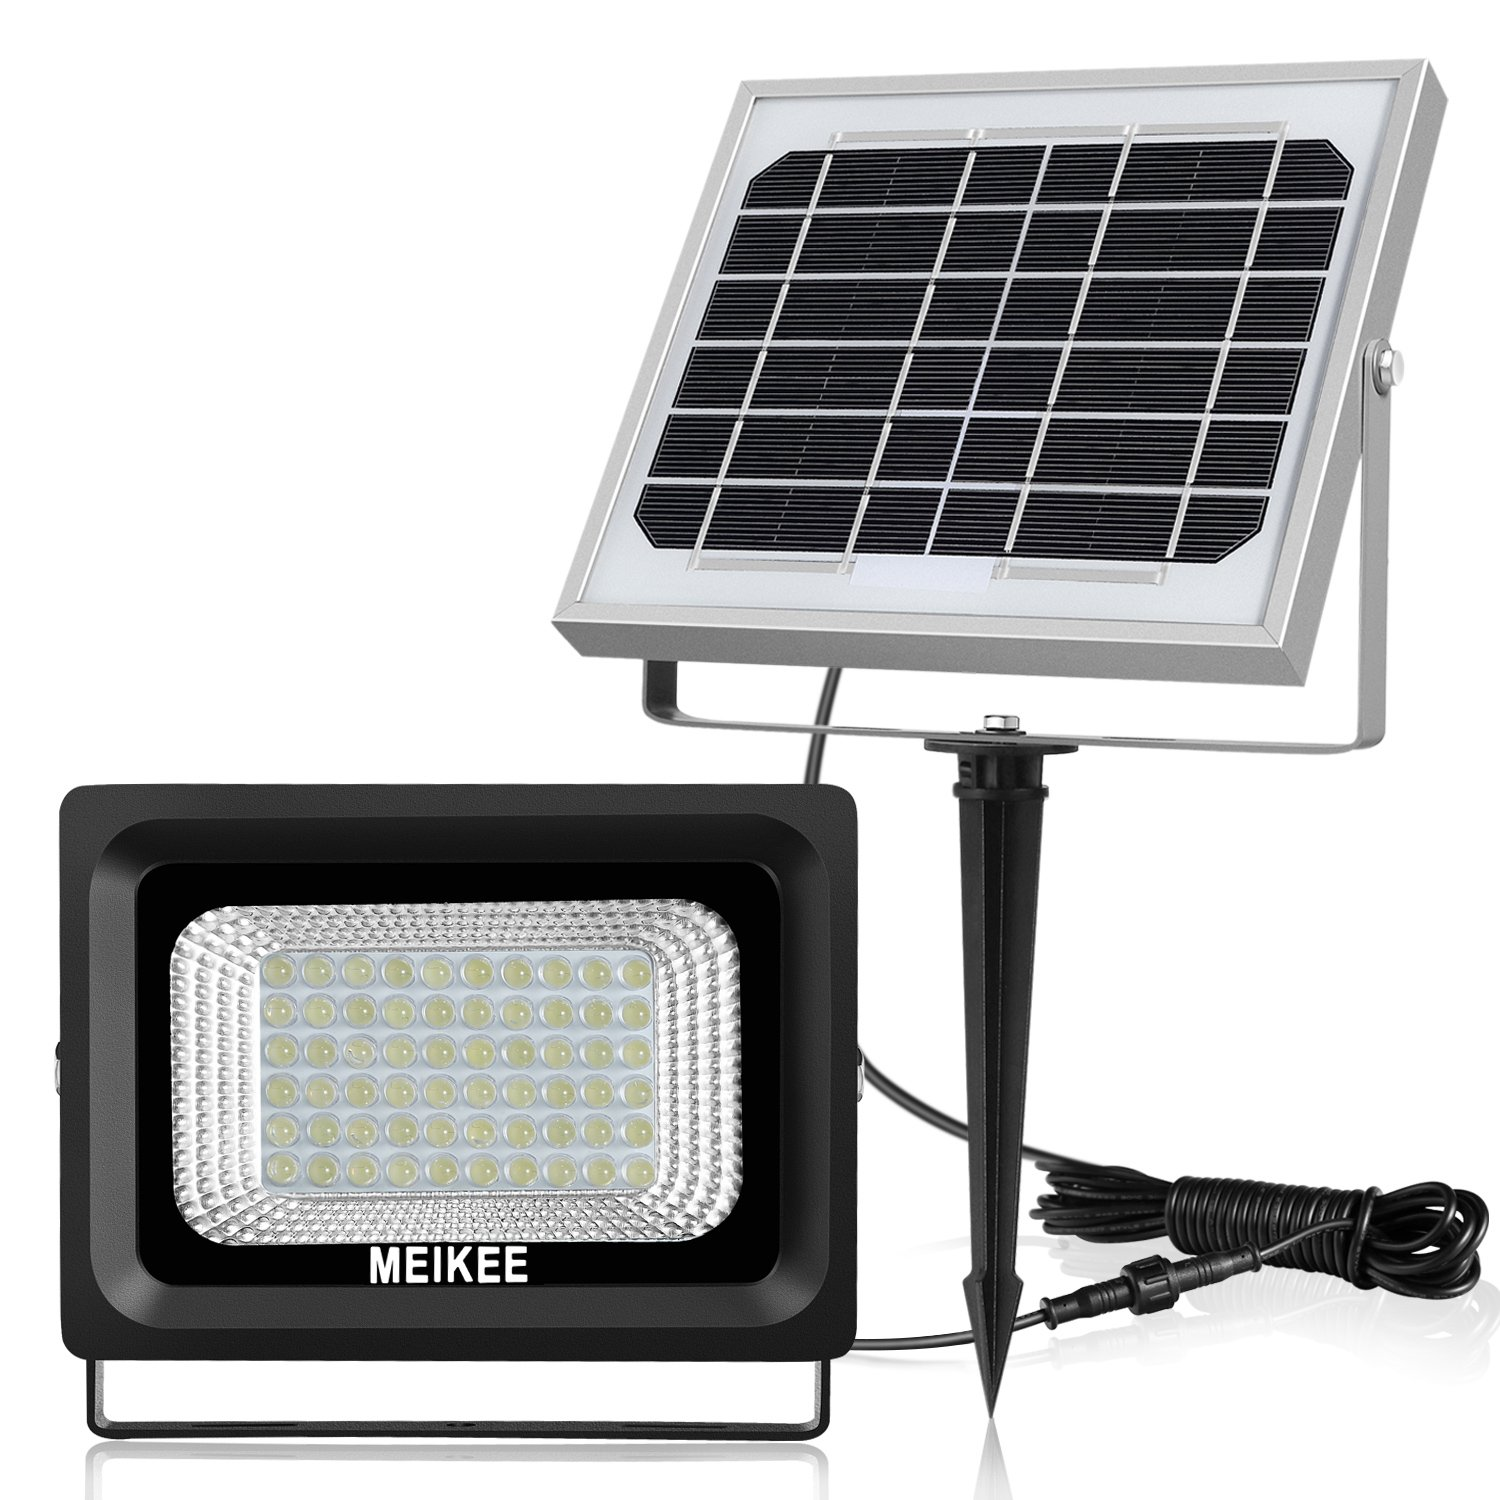 MEIKEE 60LED Solar Lights with Motion Sensor, Outdoor Security Light Solar Powered Flood Light, IP66 Waterproof 6000K Daylight White LED PIR Sensor Lights for Garden, Yard, Driveway, Fence